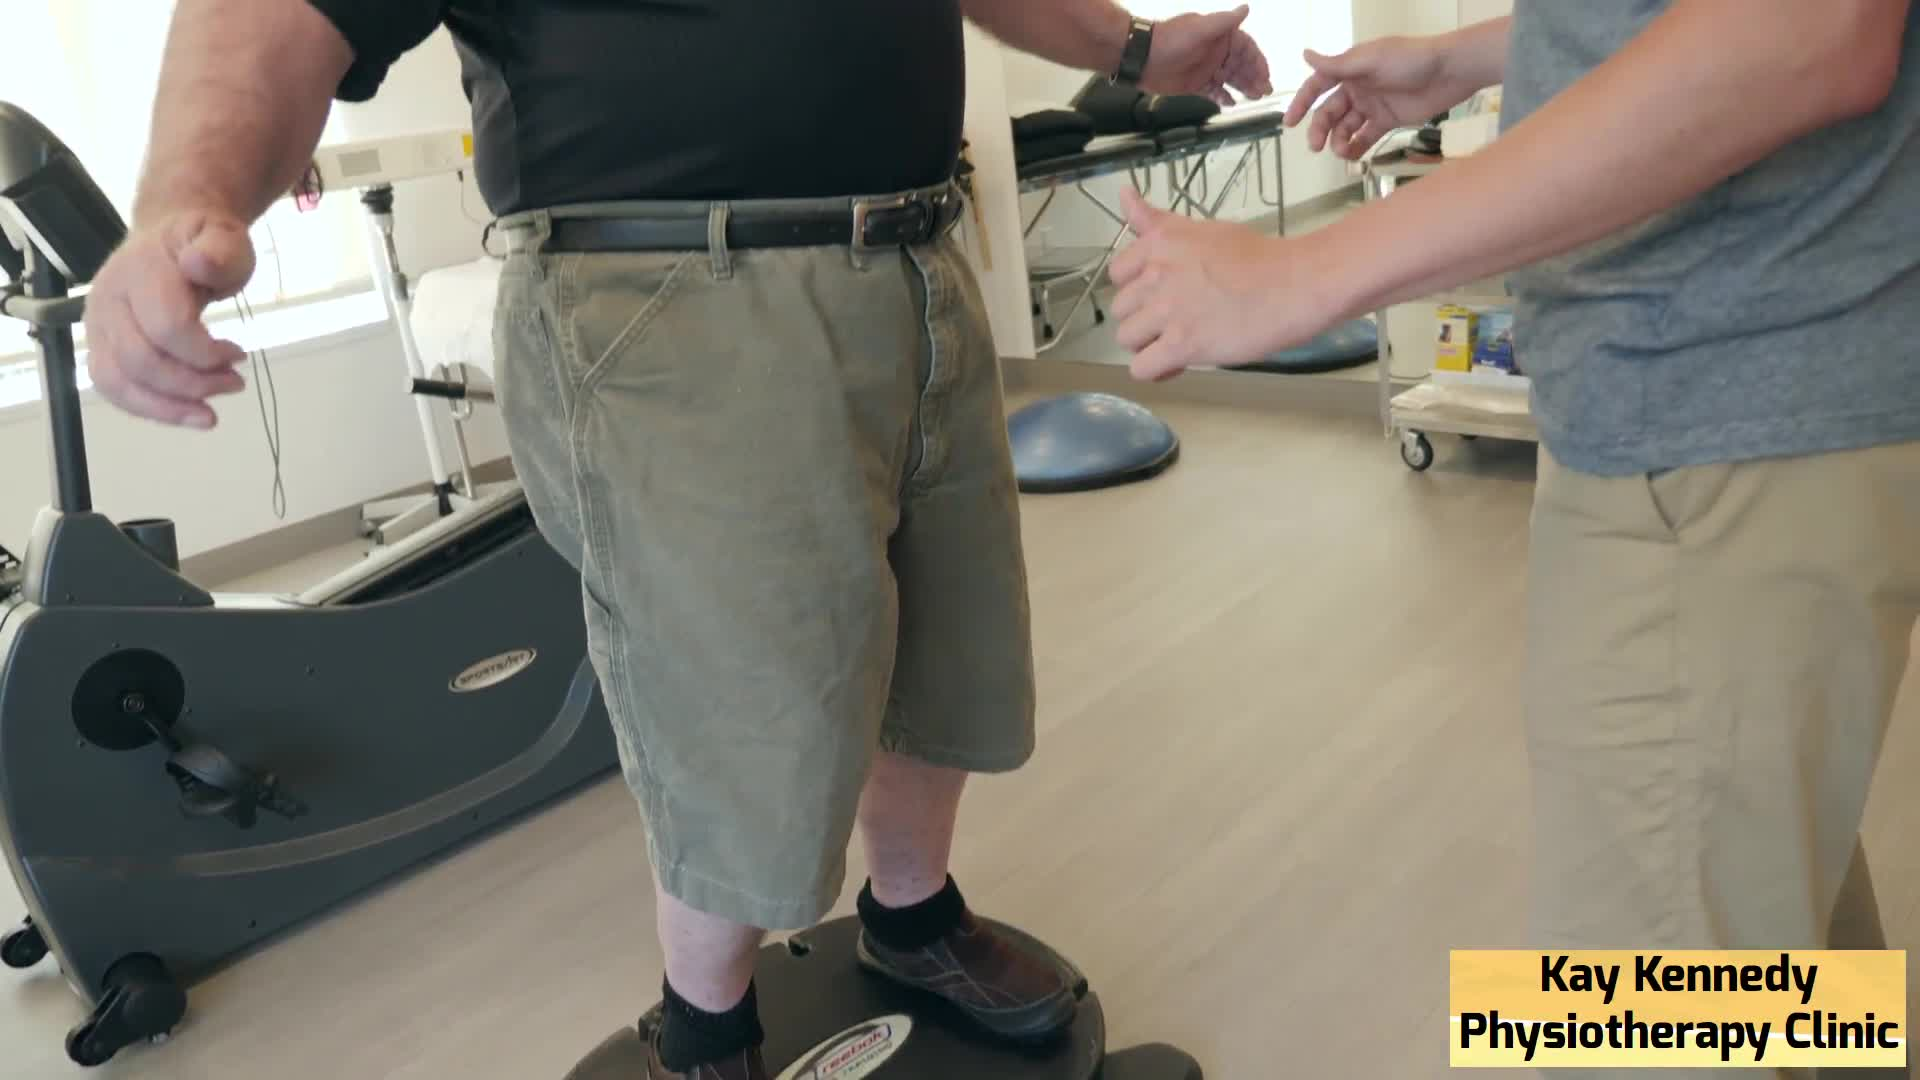 Kay Kennedy Physiotherapy Clinic - Physiotherapists - 604-531-8318